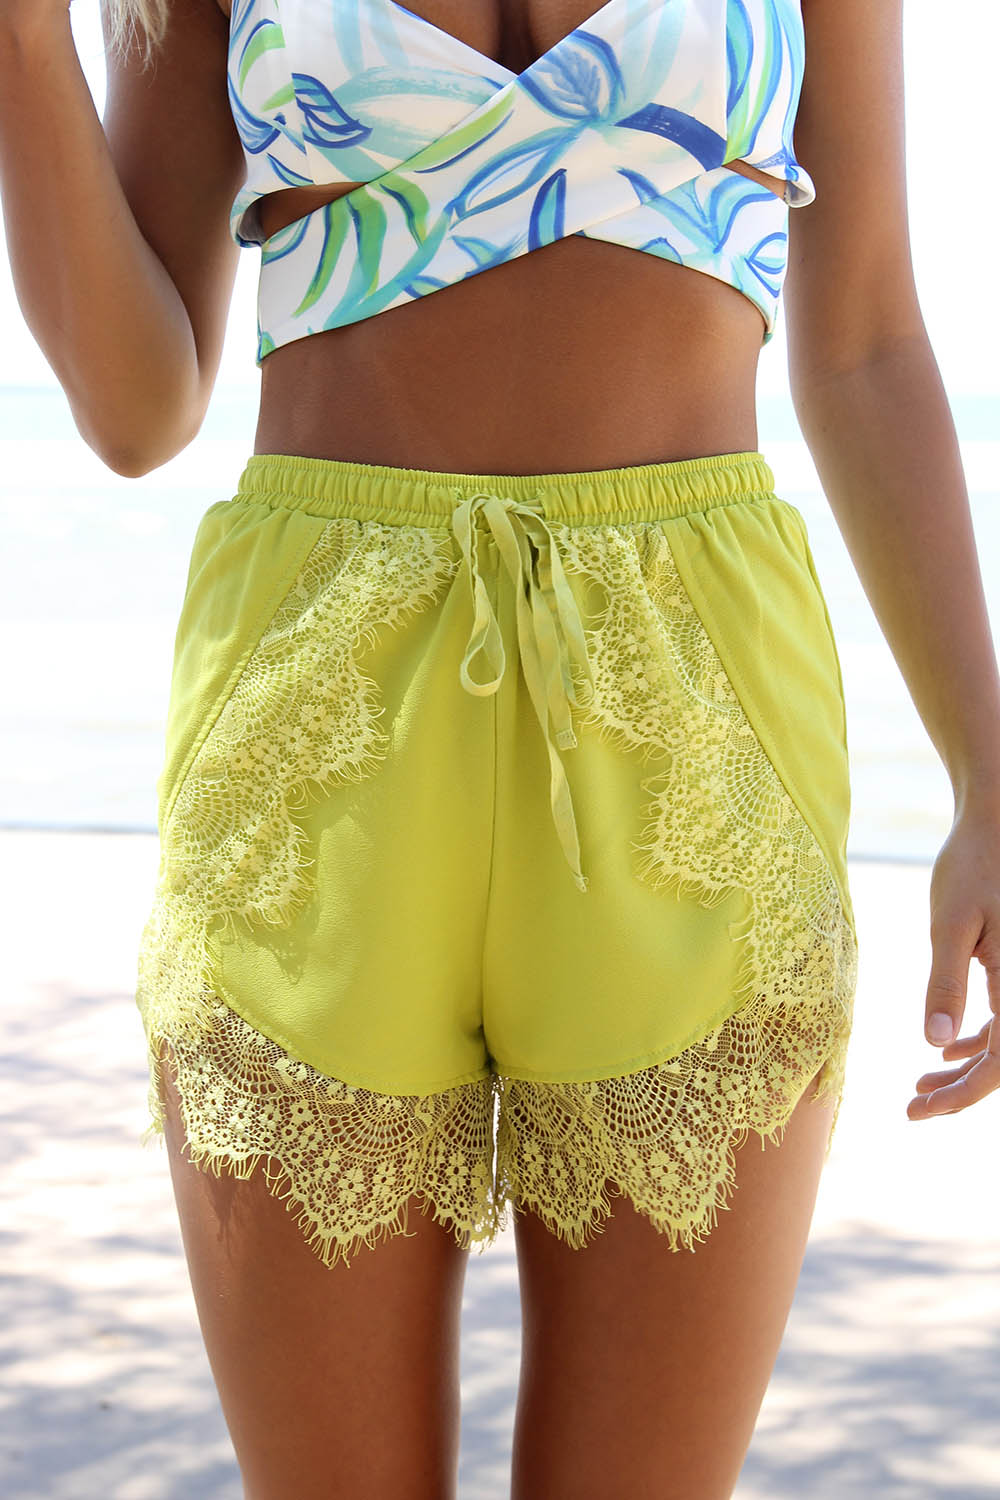 Green Shorts - Bright Olive Green High Waisted   UsTrendy